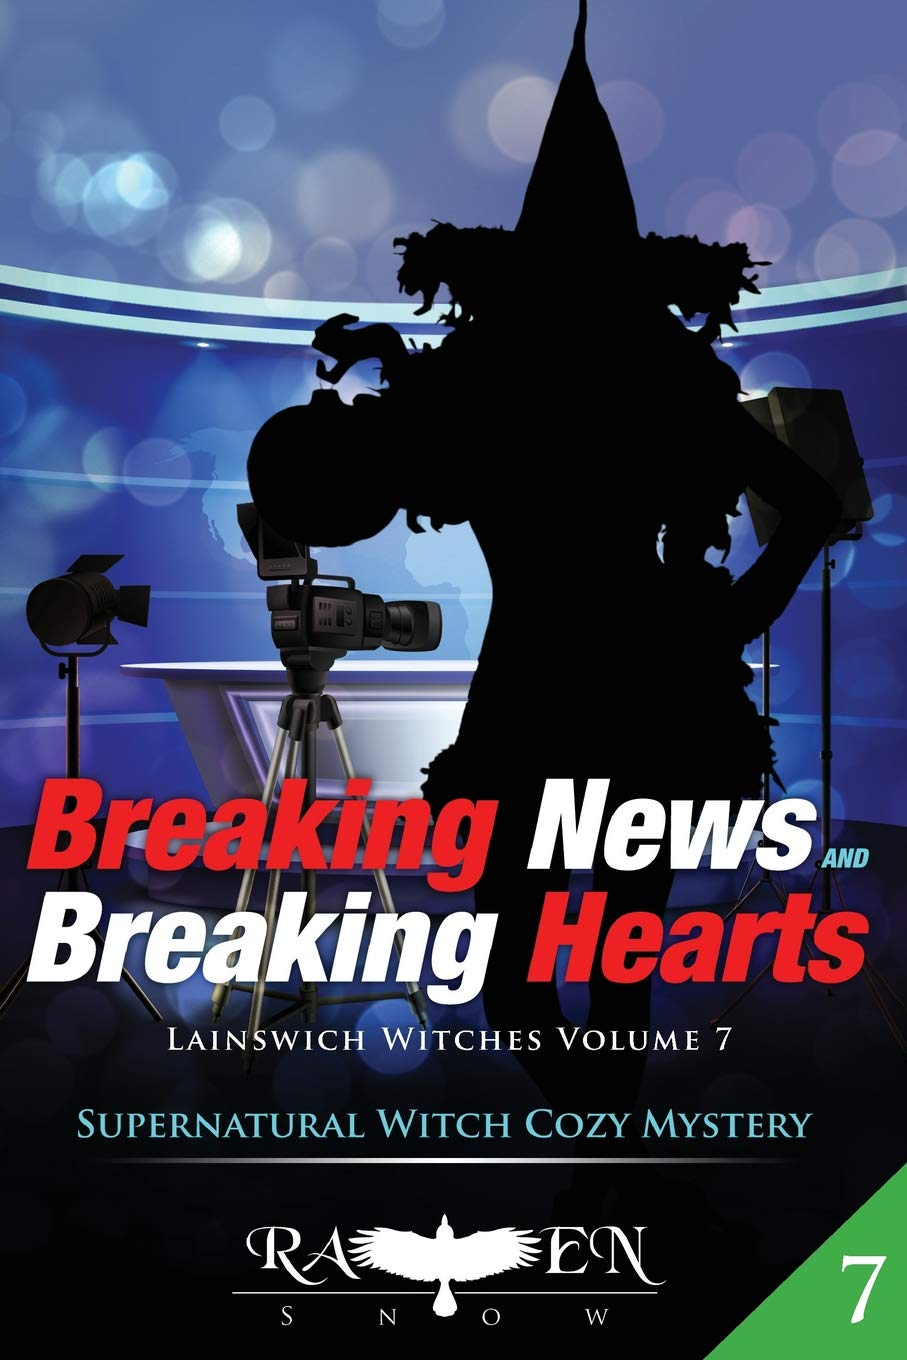 Download Breaking News and Breaking Hearts (Lainswich Witches Series) (Volume 7) ebook